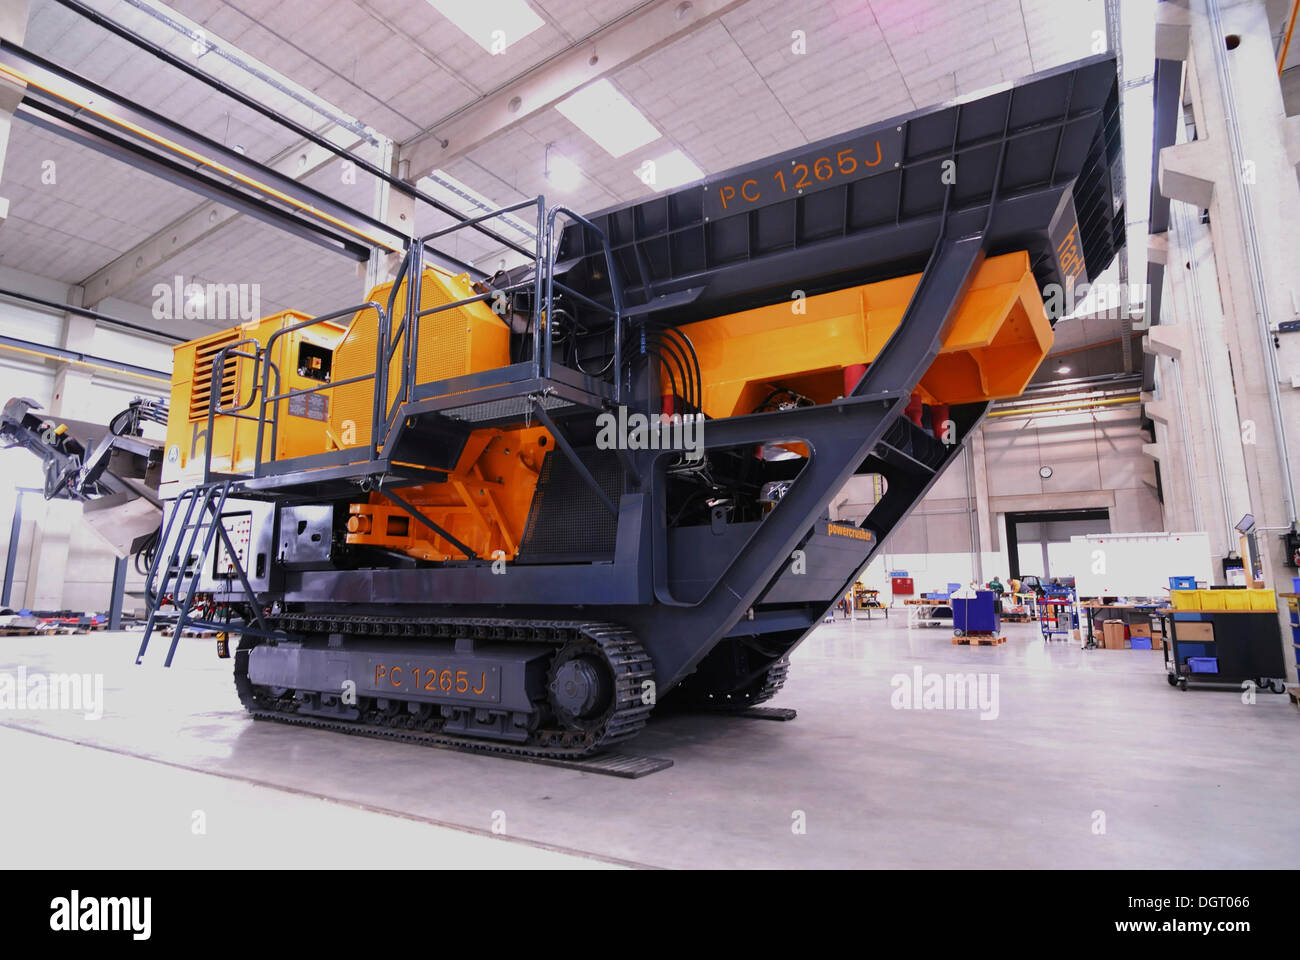 Power crusher which won several design awards, produced in Austria - Stock Image